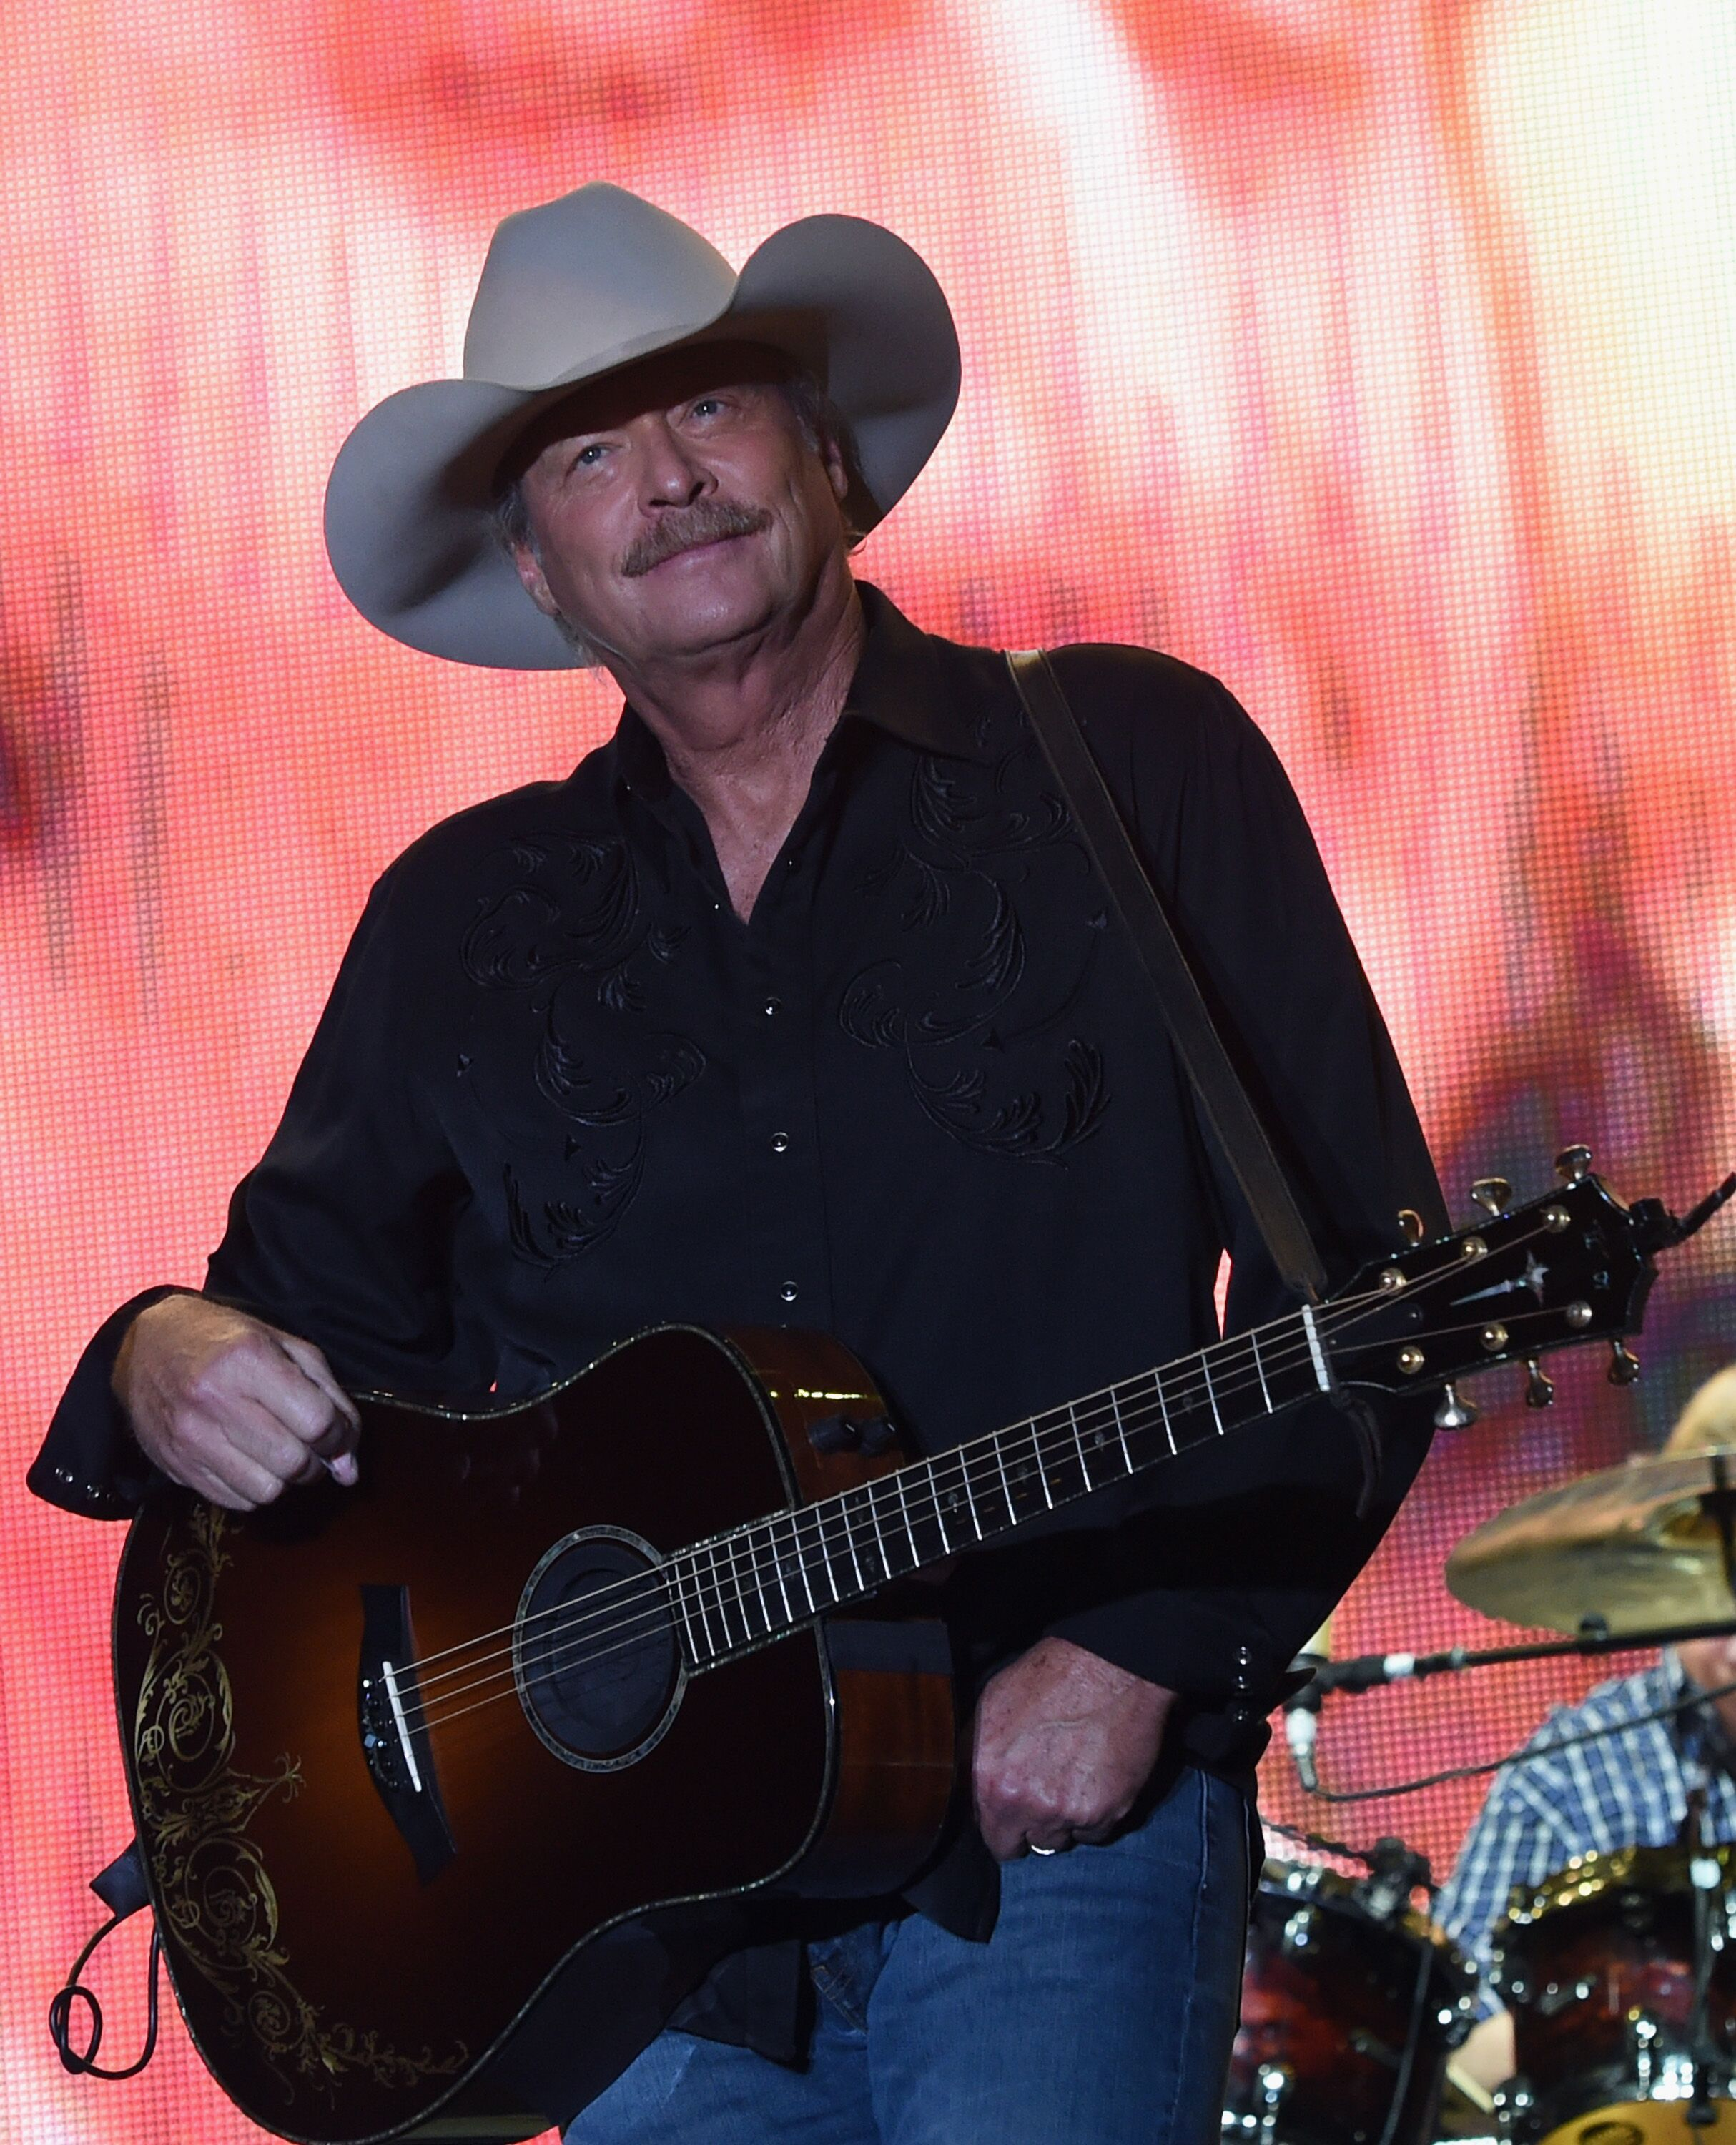 Alan Jackson performs during Kicker Country Stampede - Day 3 at Tuttle Creek State Park on June 24, 2017 in Manhattan, Kansas. | Source: Getty Images